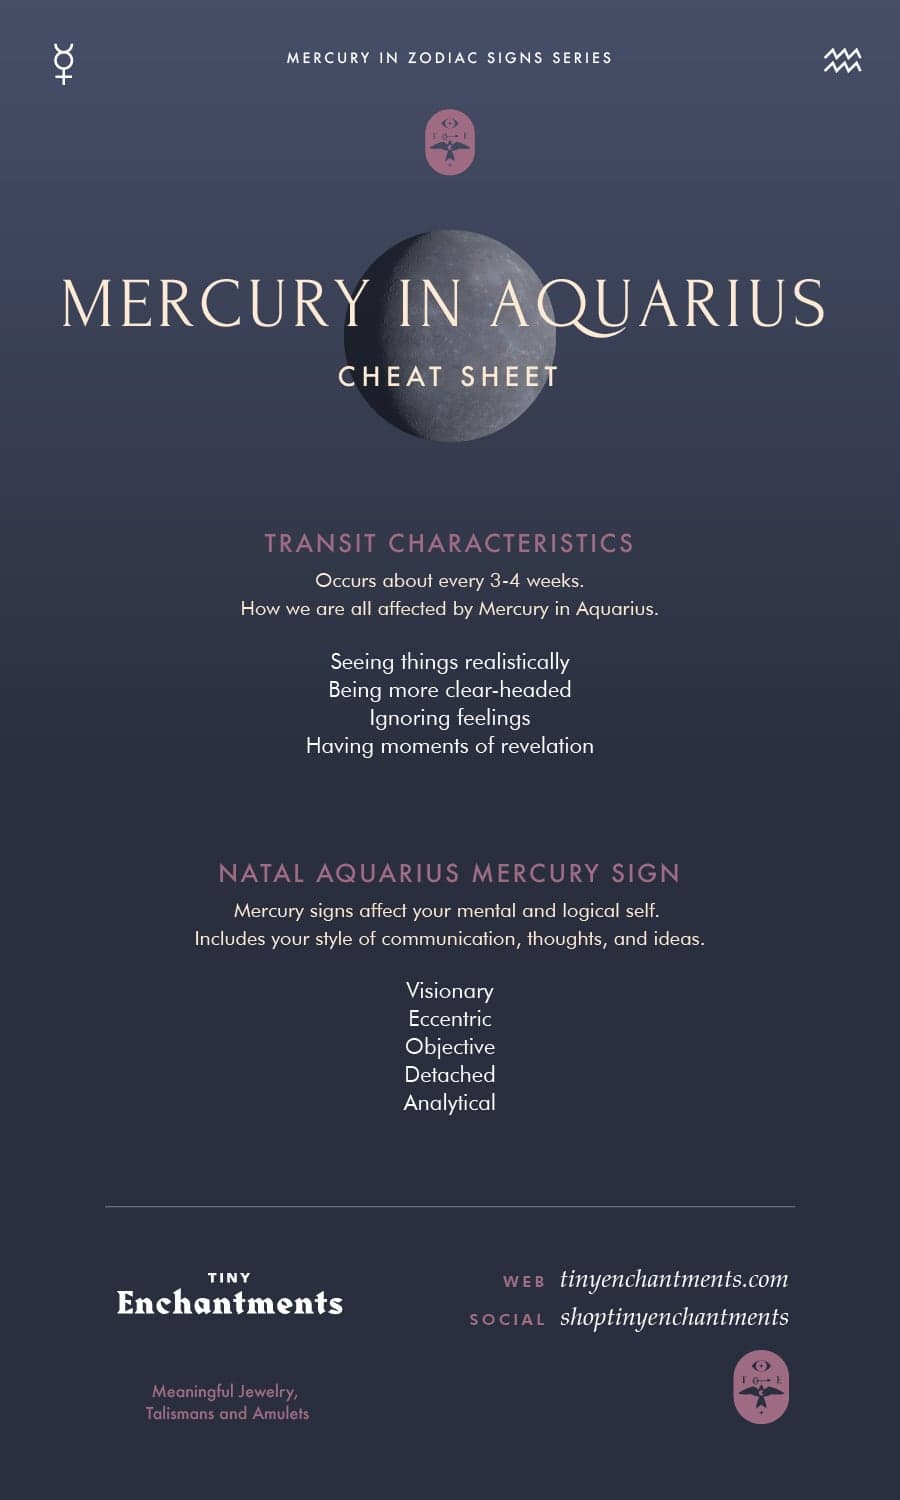 Aquarius & Mercury - Aquarius Mercury Sign and Mercury in Aquarius Transit Meanings